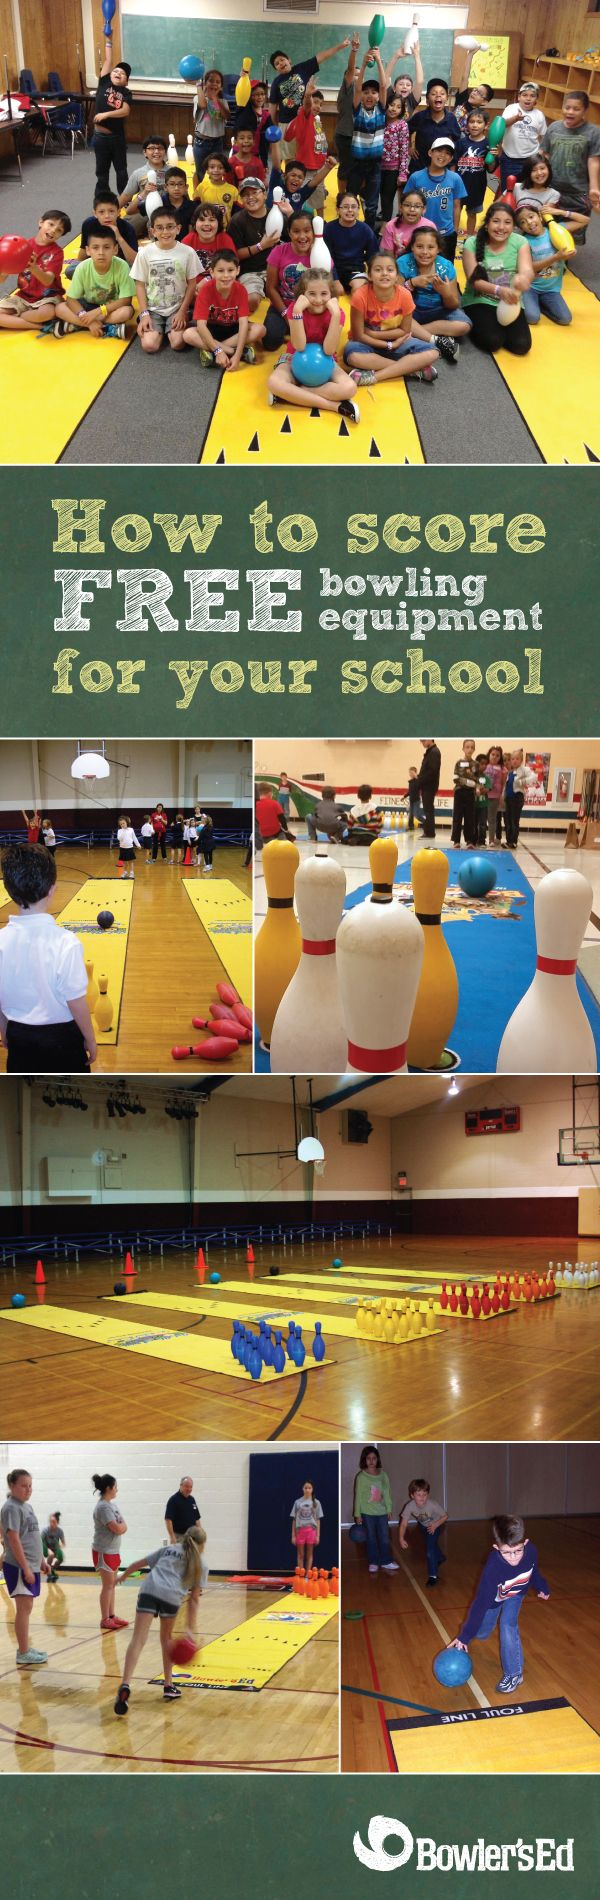 Score free bowling equipment for your school! Apply for a Bowler's Ed grant and your school could receive $2,200 worth of bowling equipment – great for a Family Fitness Night, field day, and before/after school programs. It's a short and sweet application, and 95% (yes, you read that right!) of all grant applications are approved.